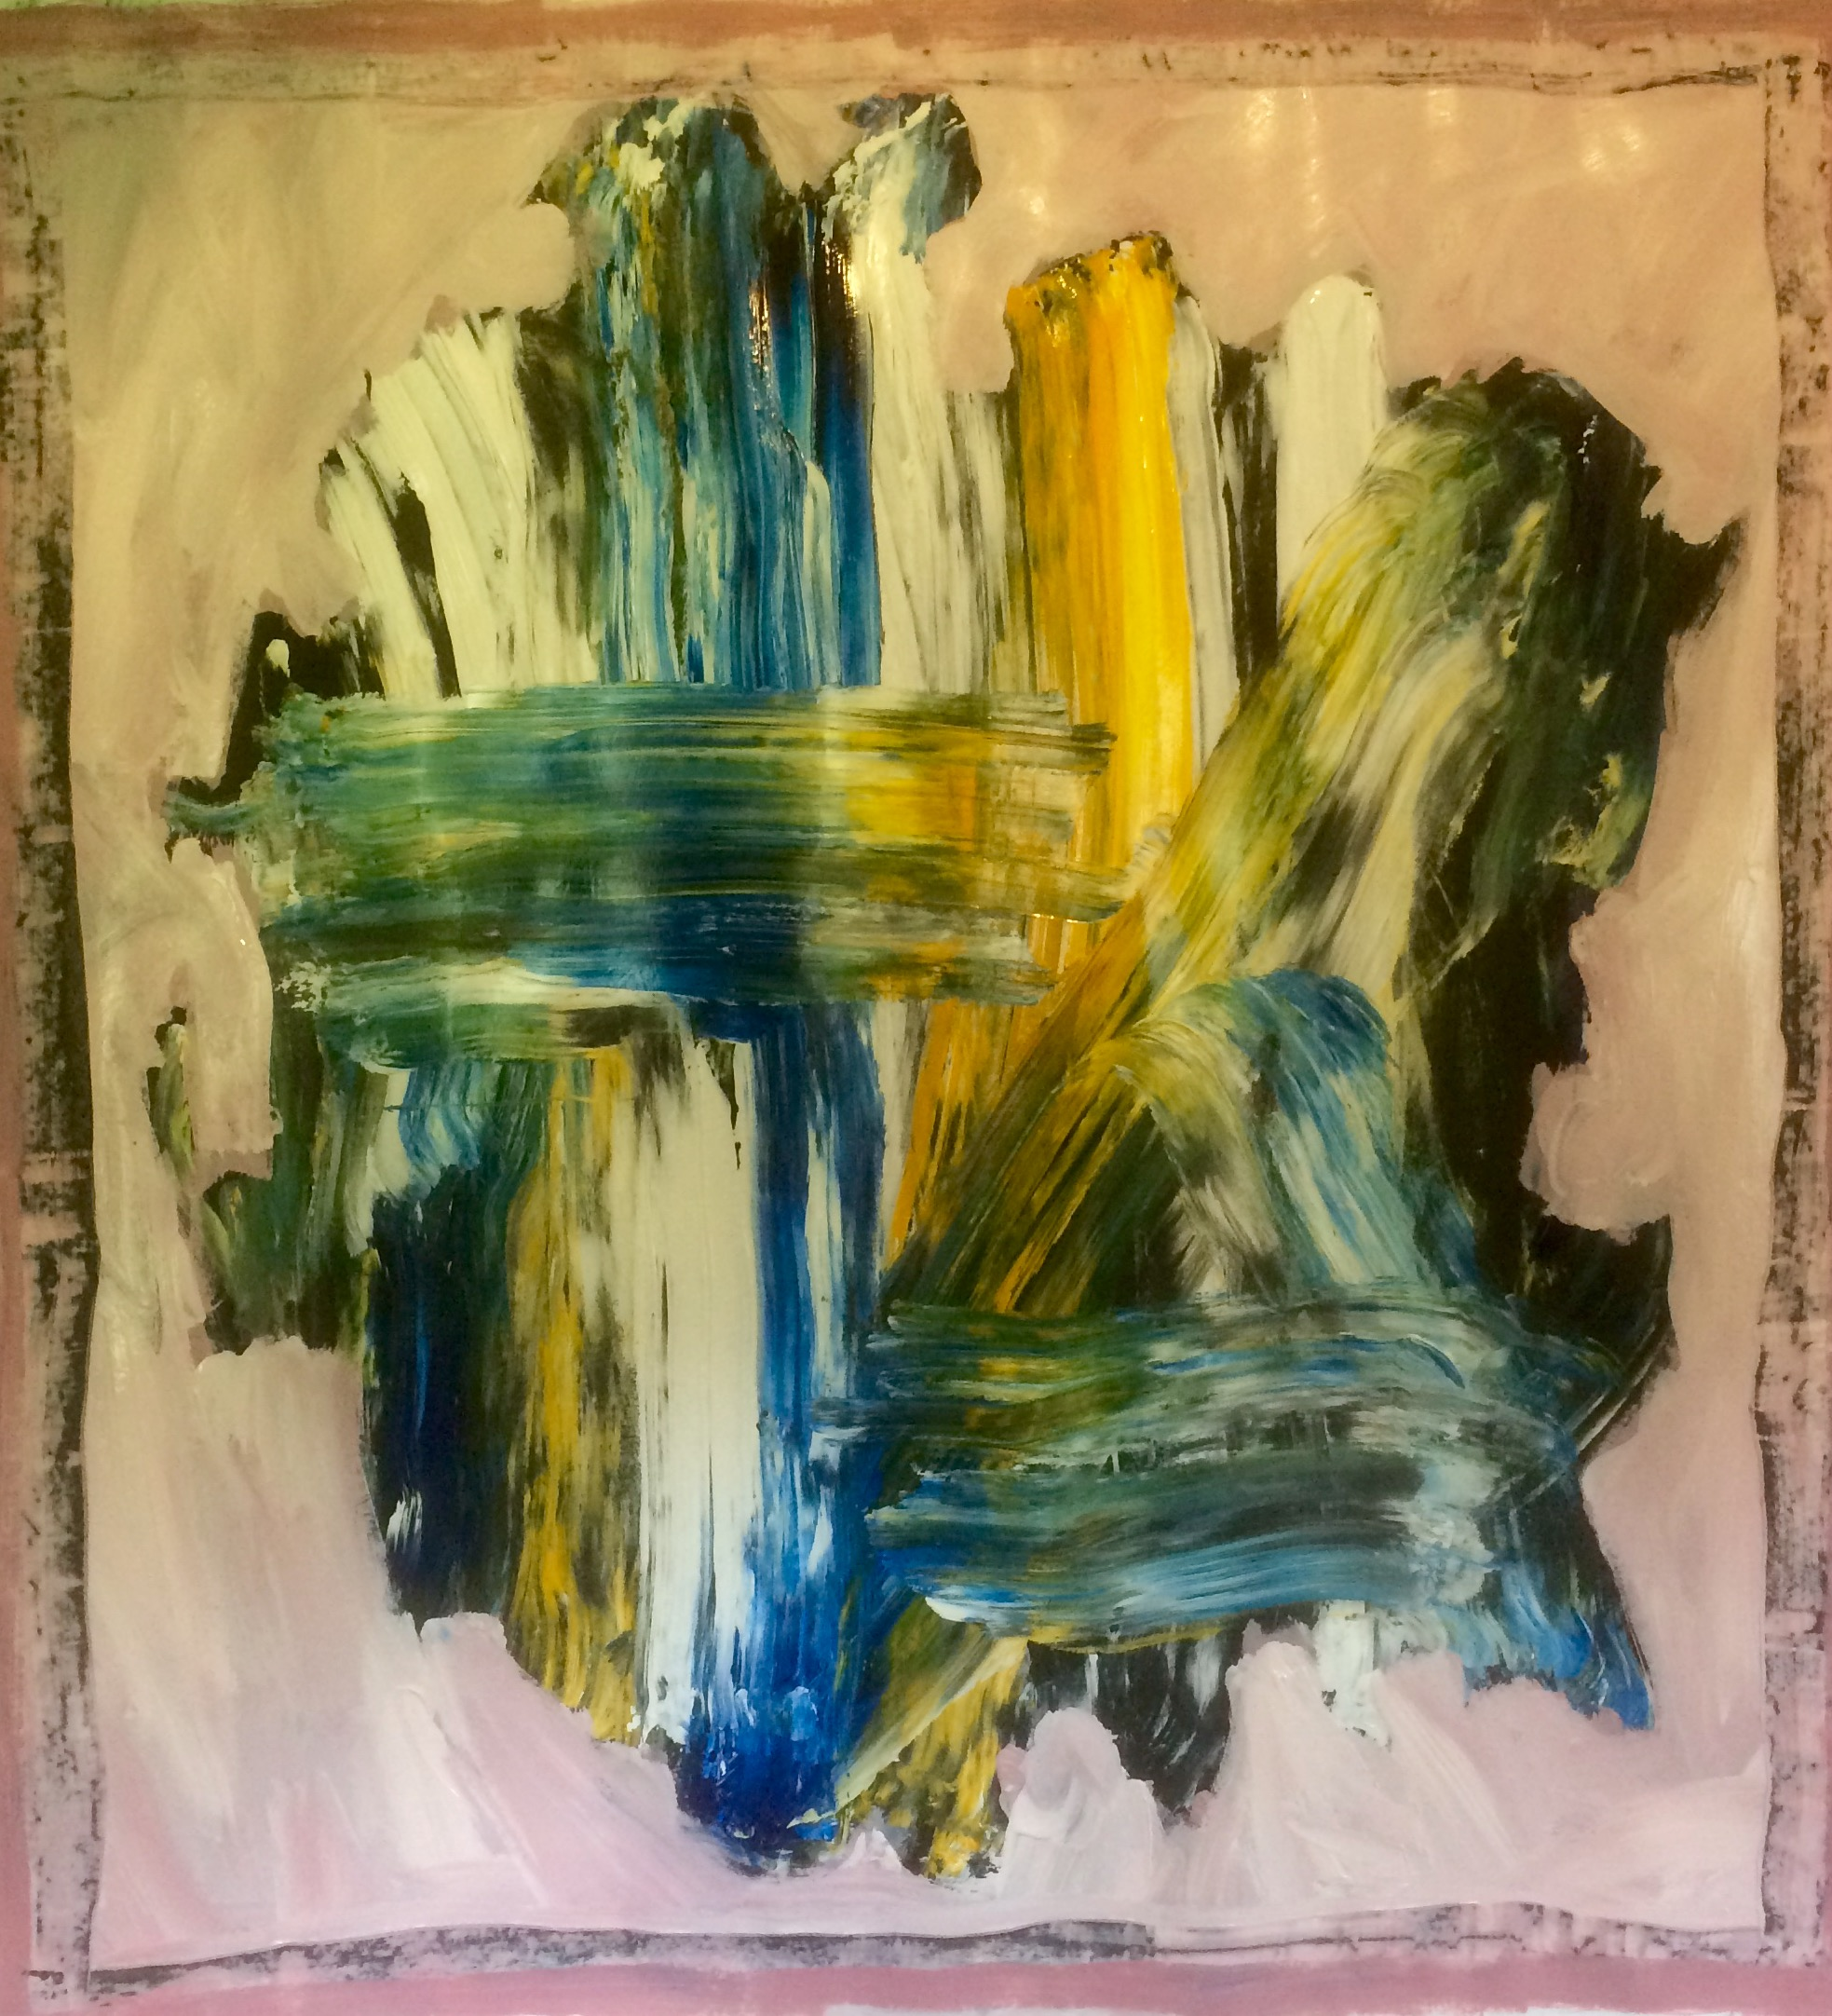 Untitled (Abstract Series 2017) by Martin R. Reed